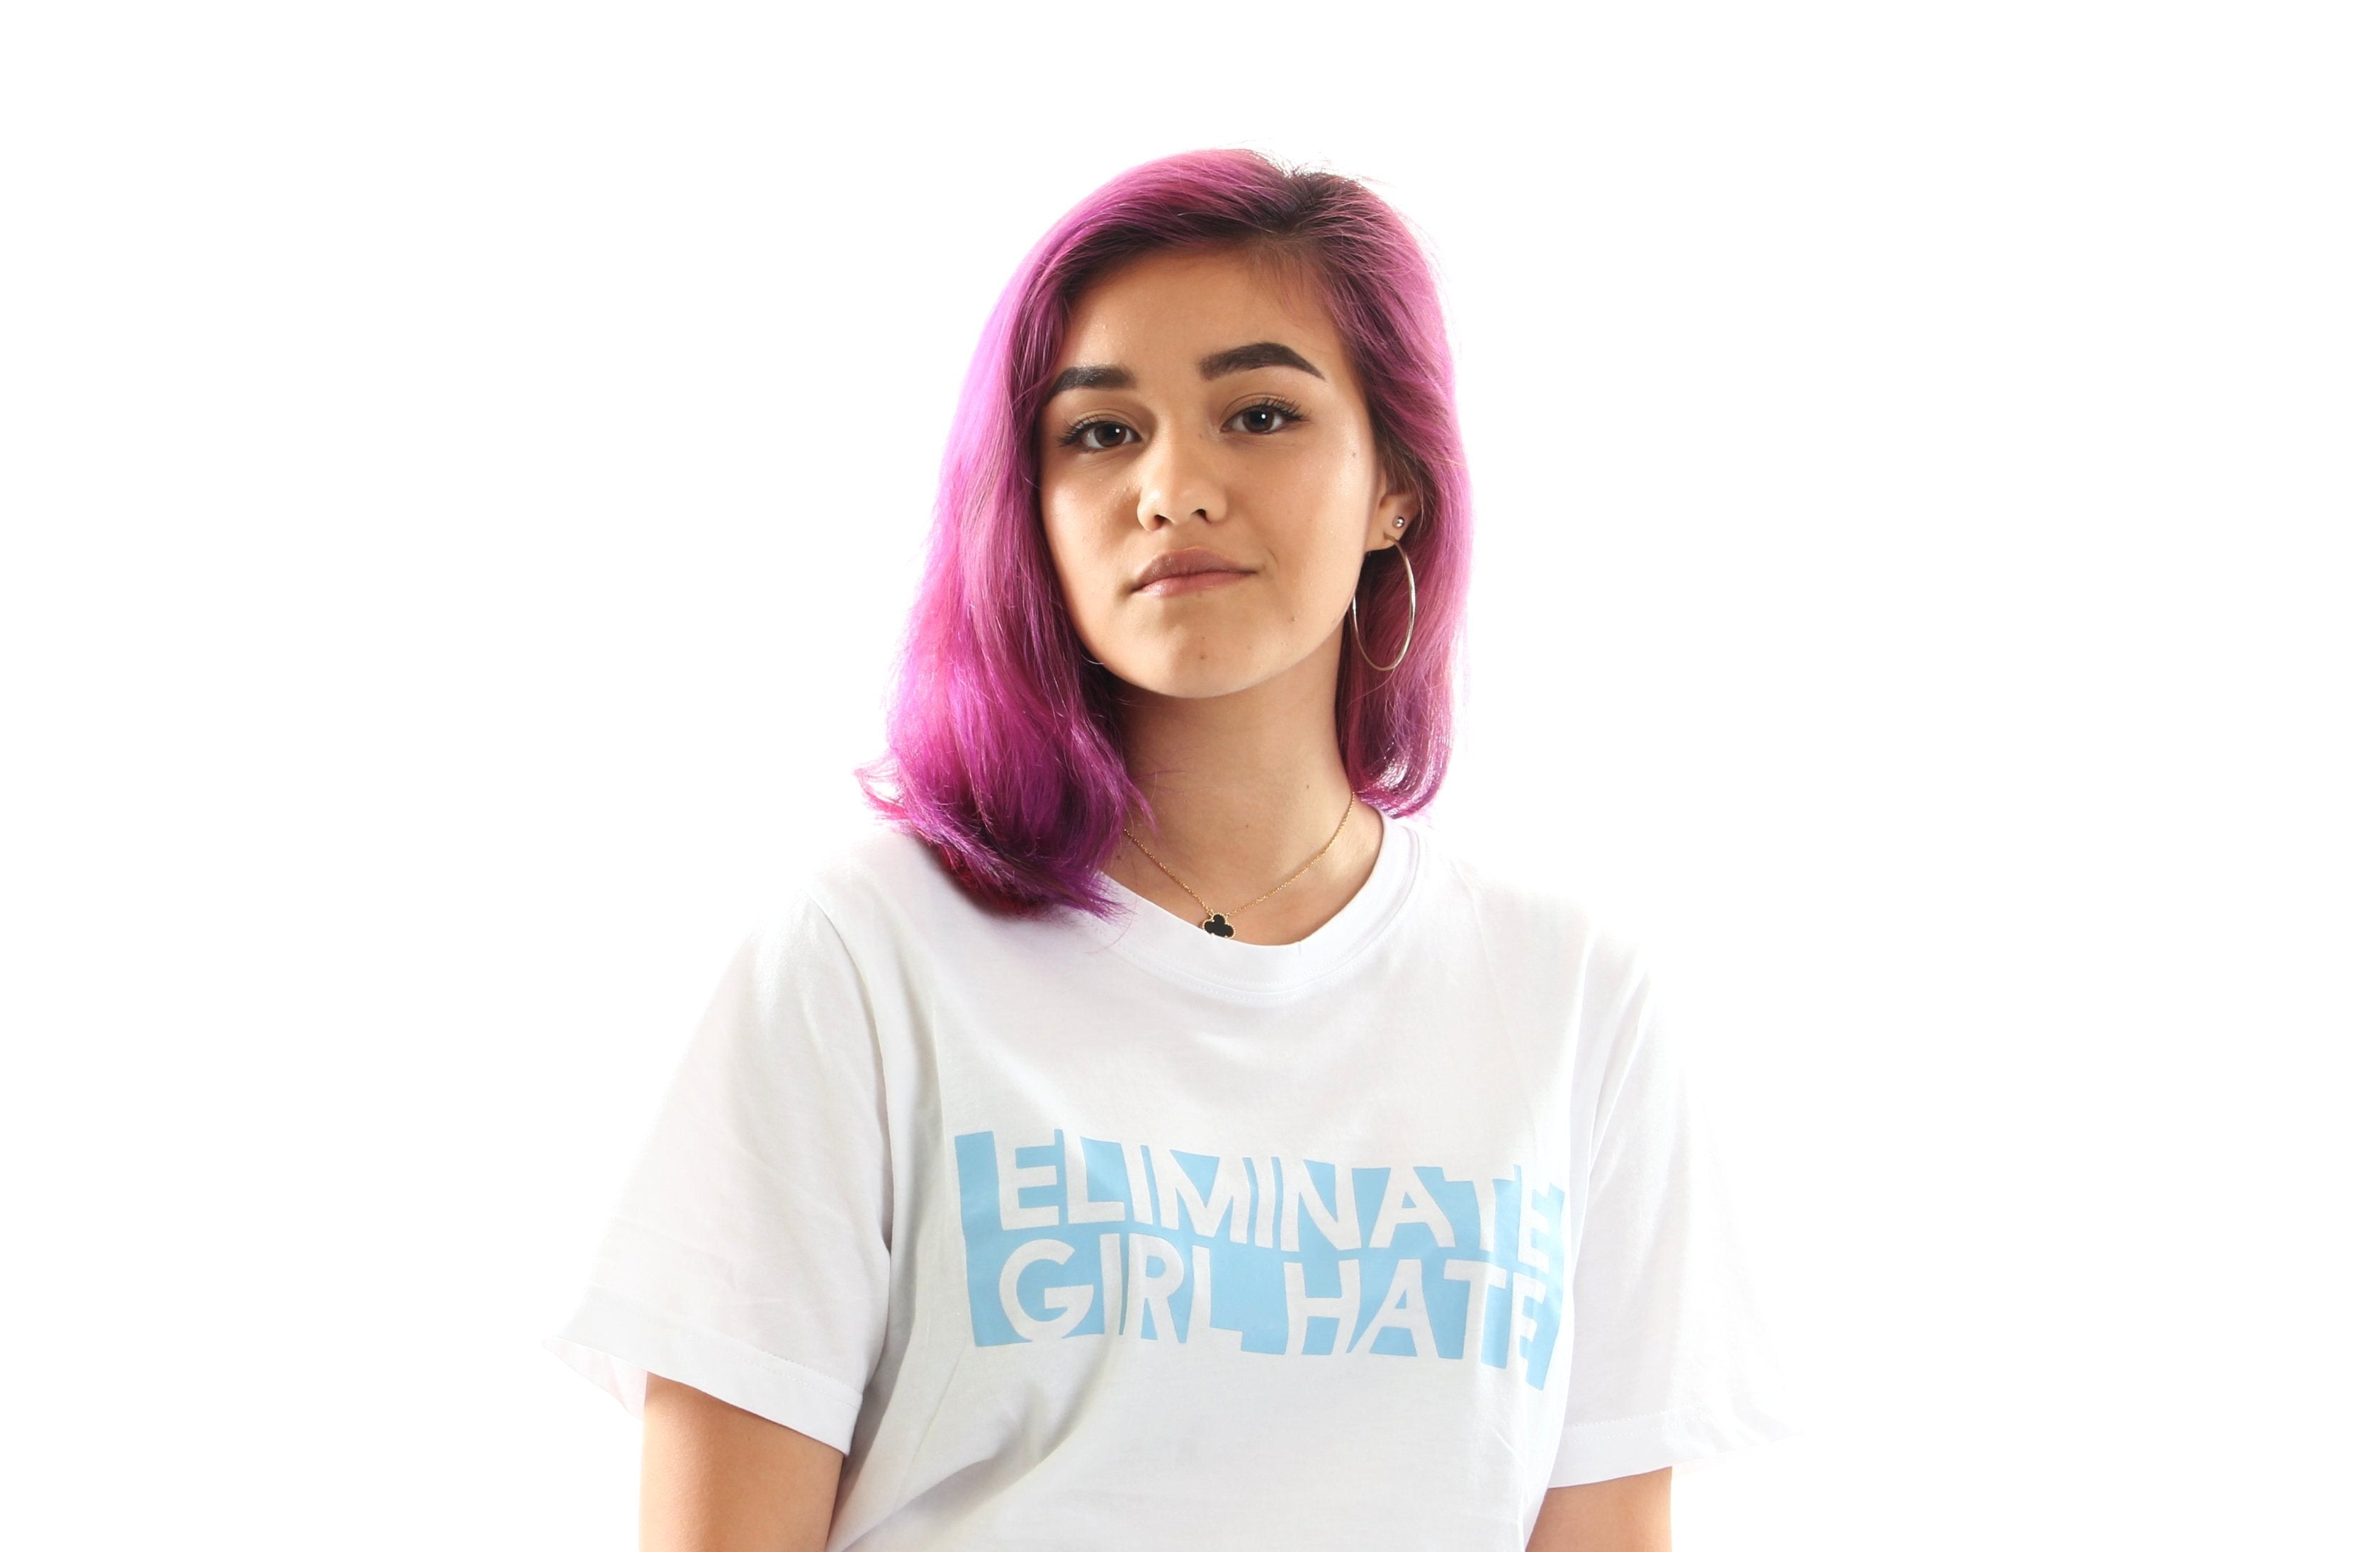 Eliminate Girl Hate Tee